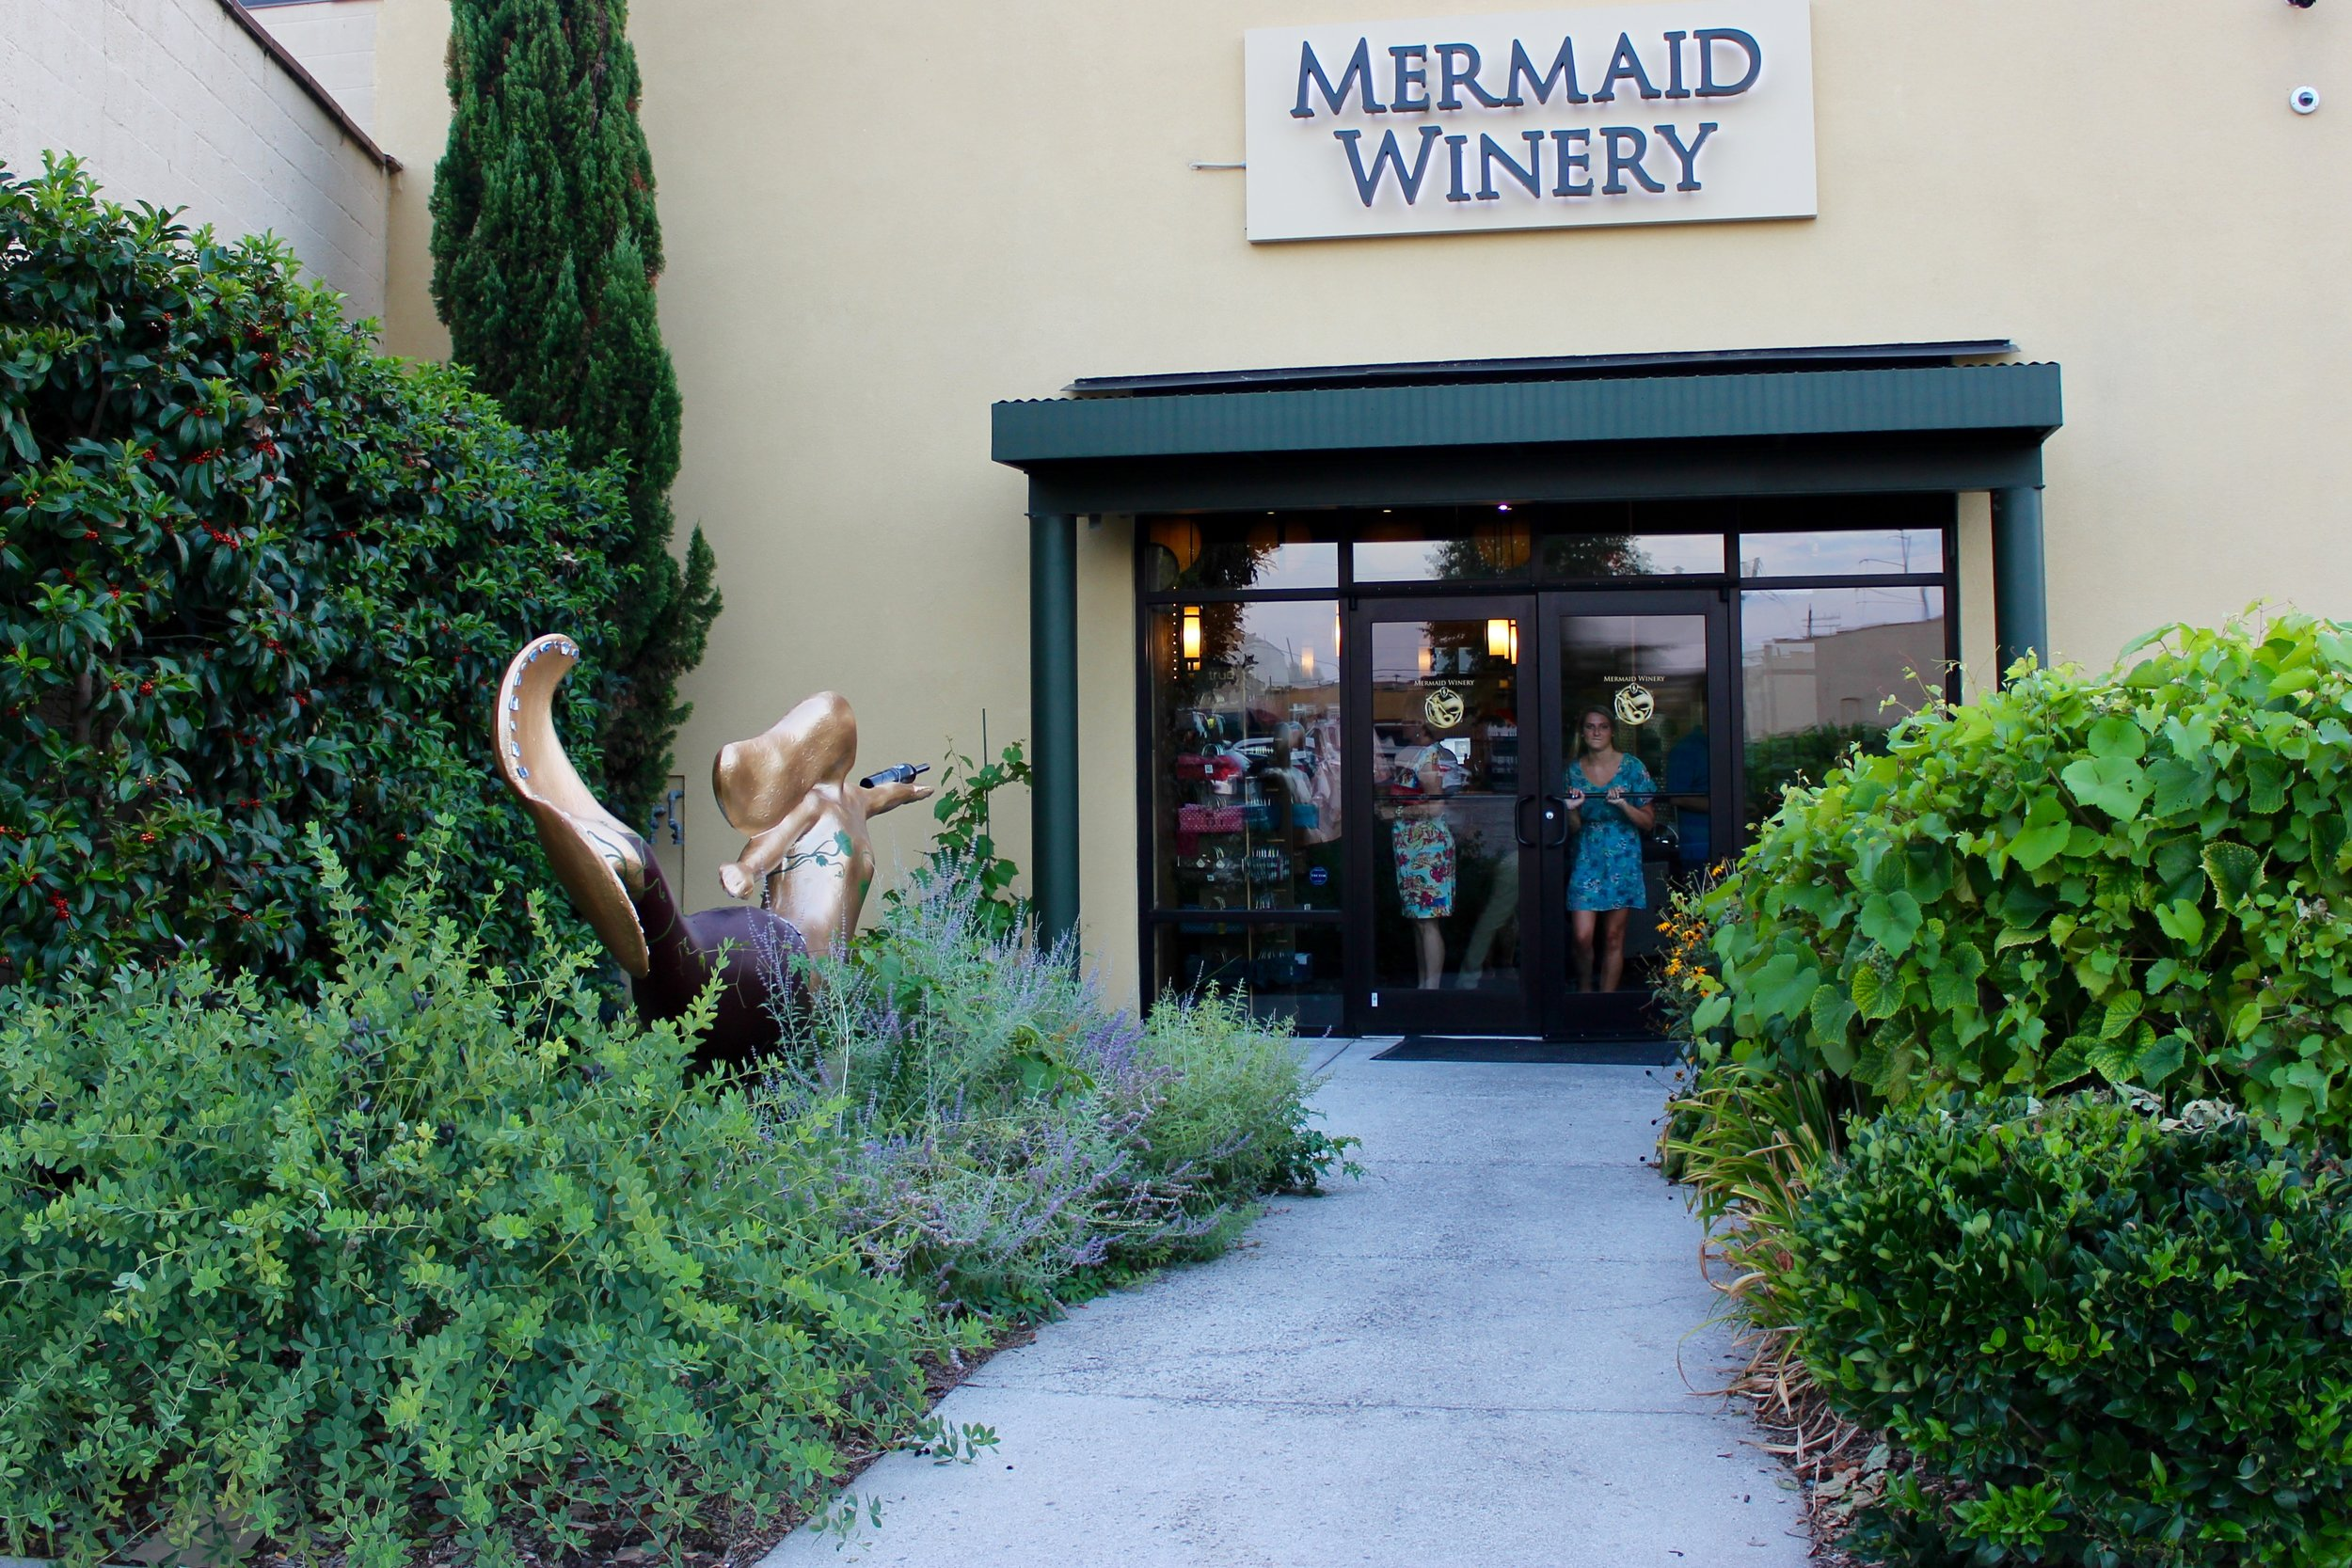 Mermaid Winery